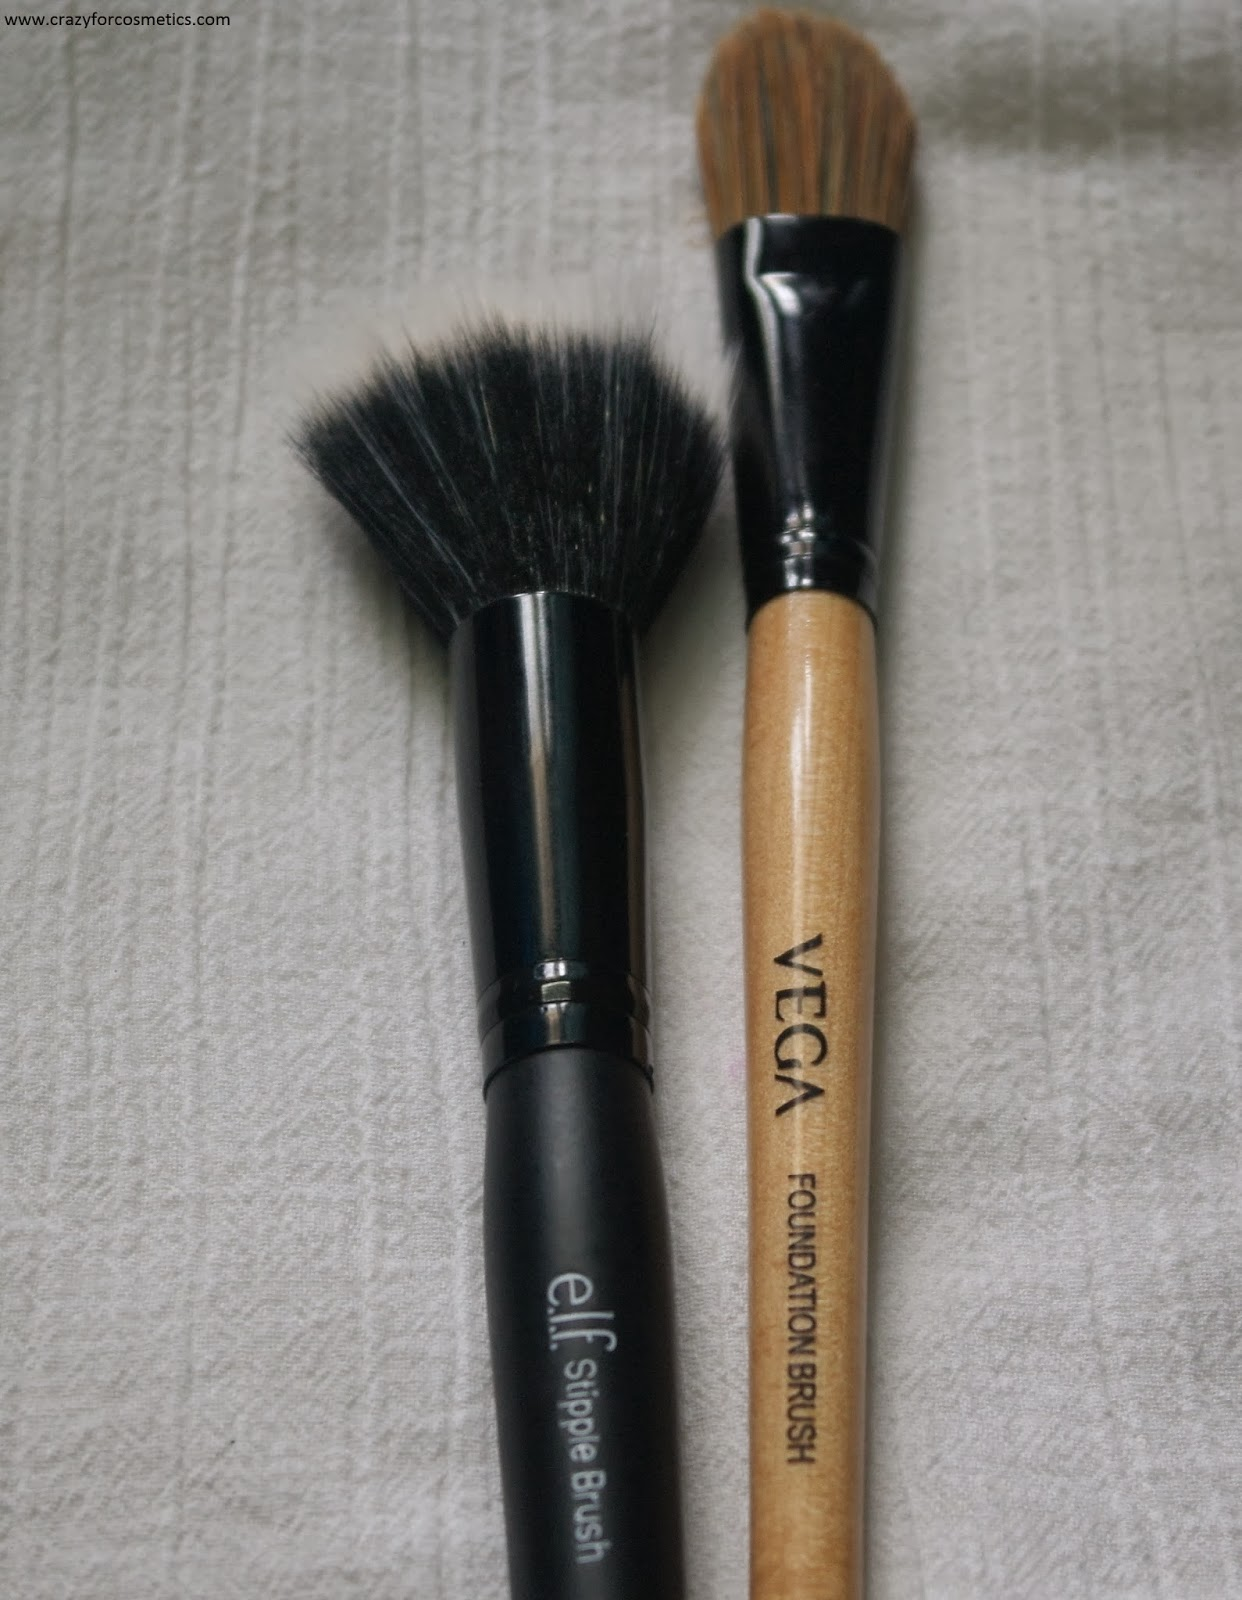 Foundation Brush: ELF Stipple Brush Review, Technique To Create Airbrushed